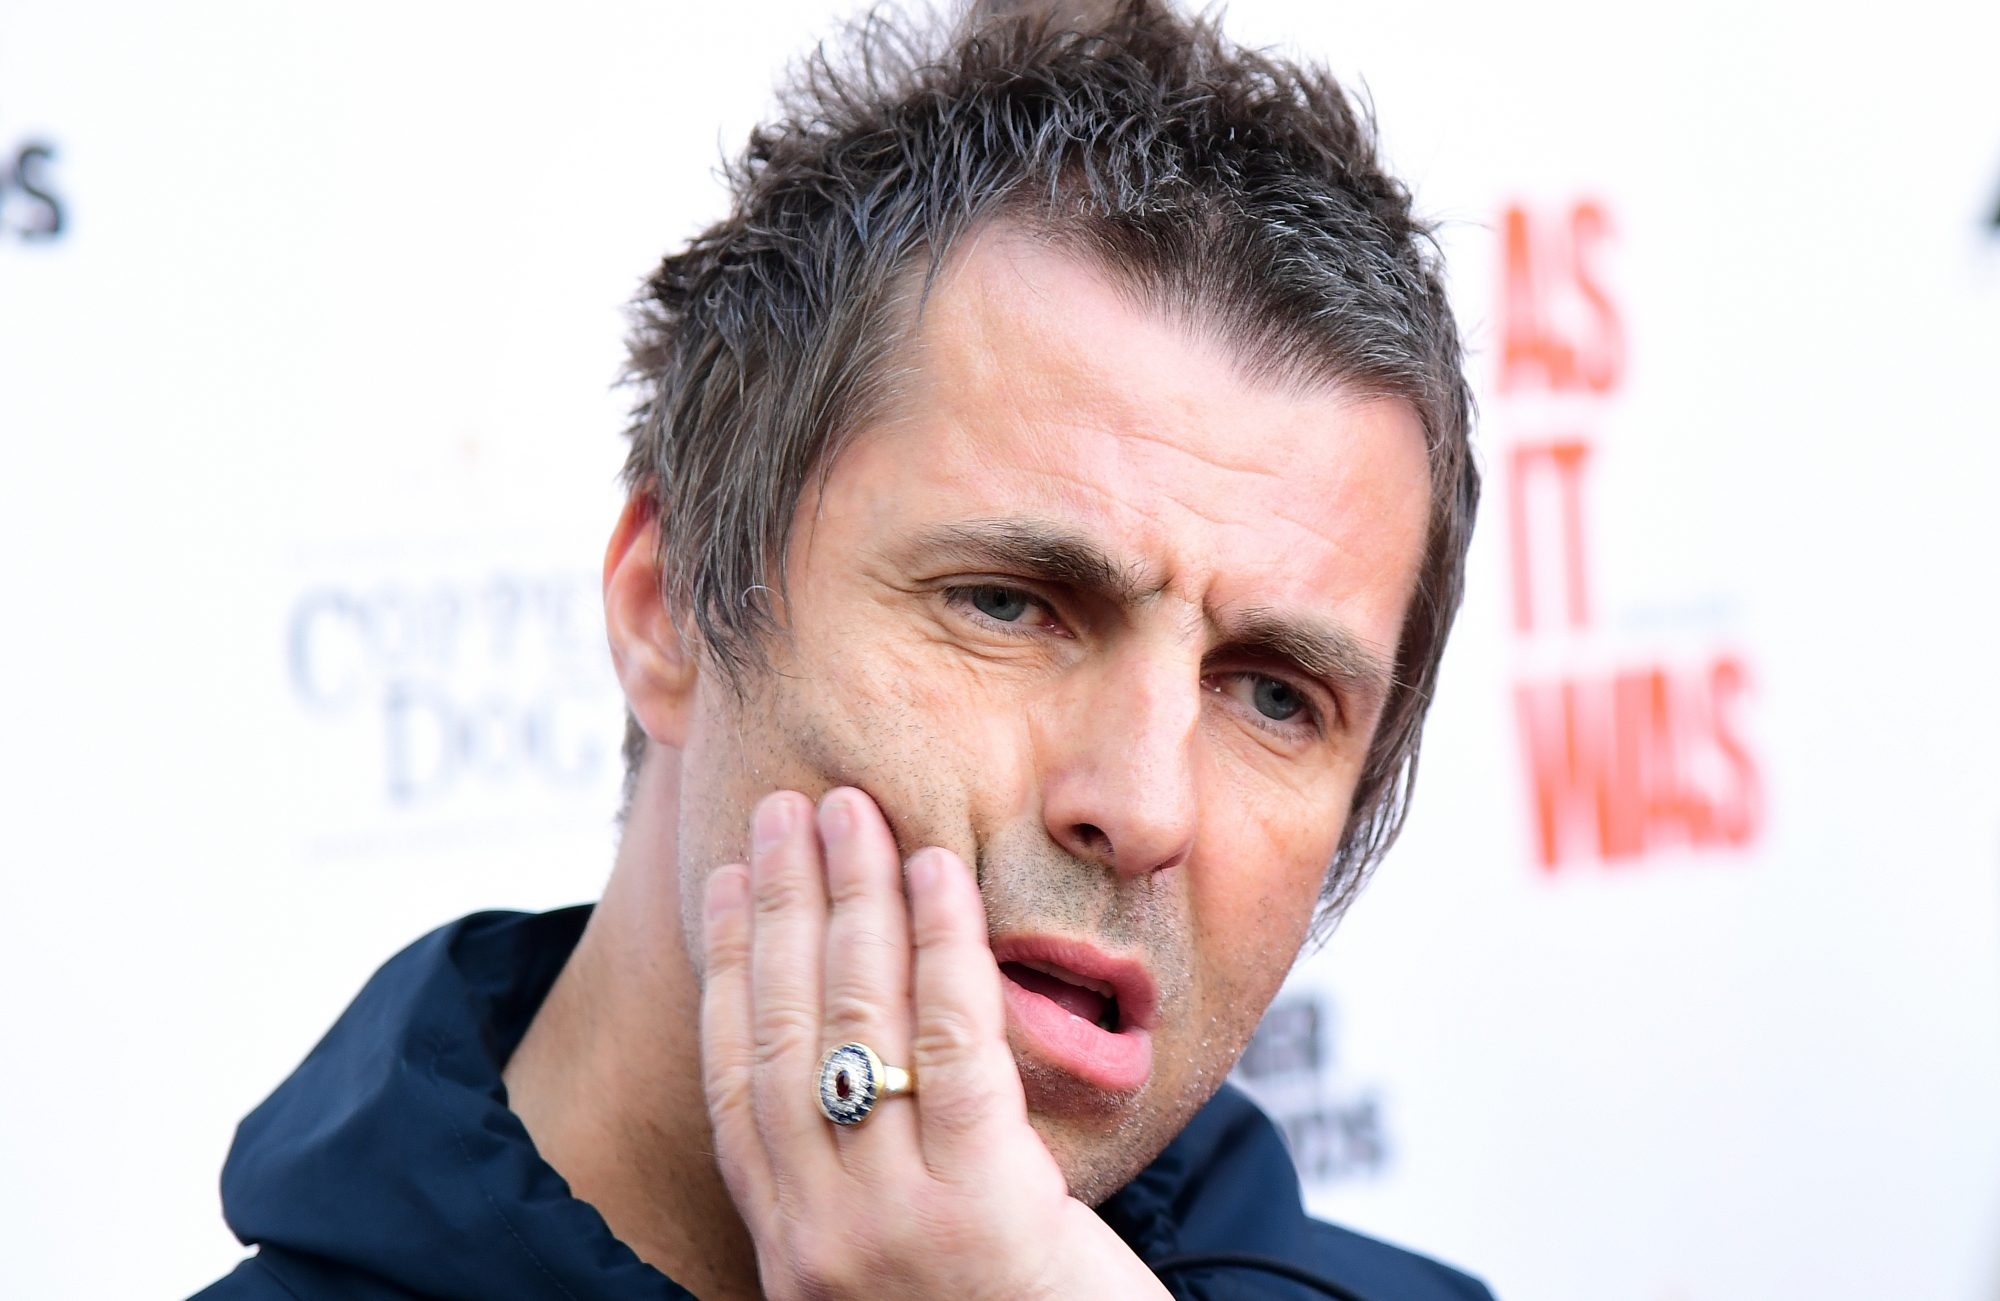 Liam Gallagher's Been Pontificating on Knife Crime - But ...